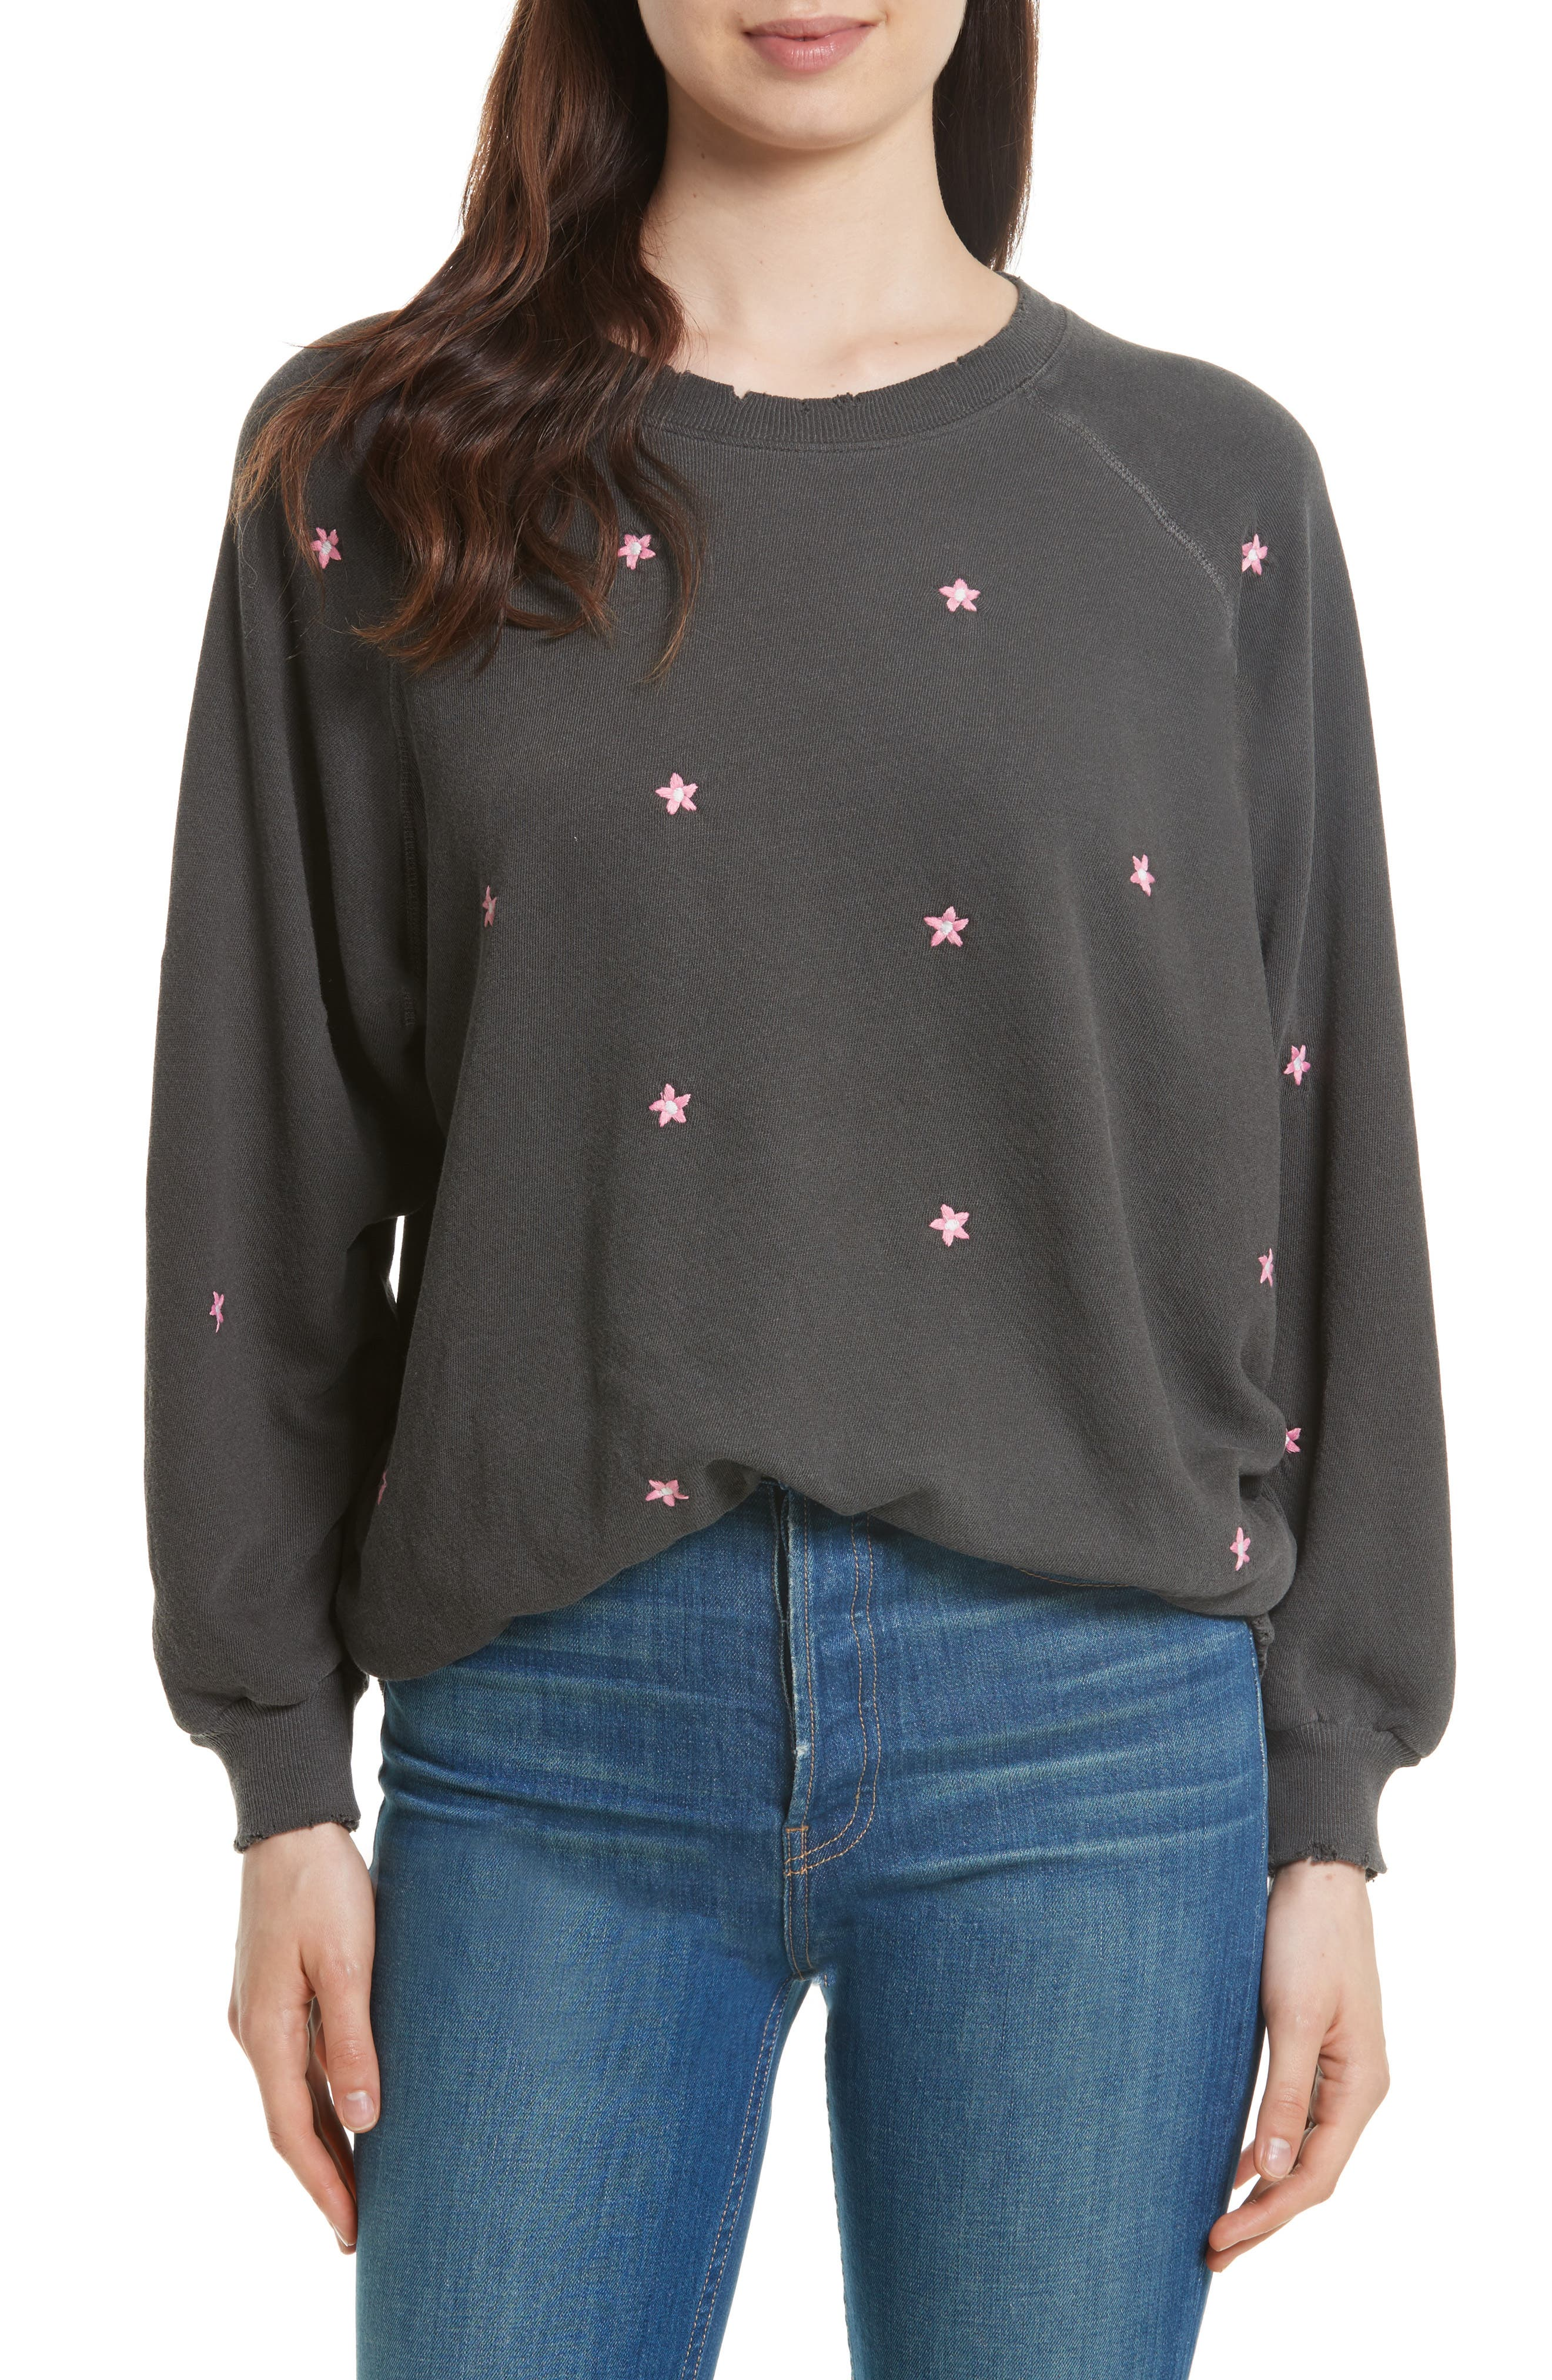 THE GREAT. The Embroidered Bubble Sweatshirt